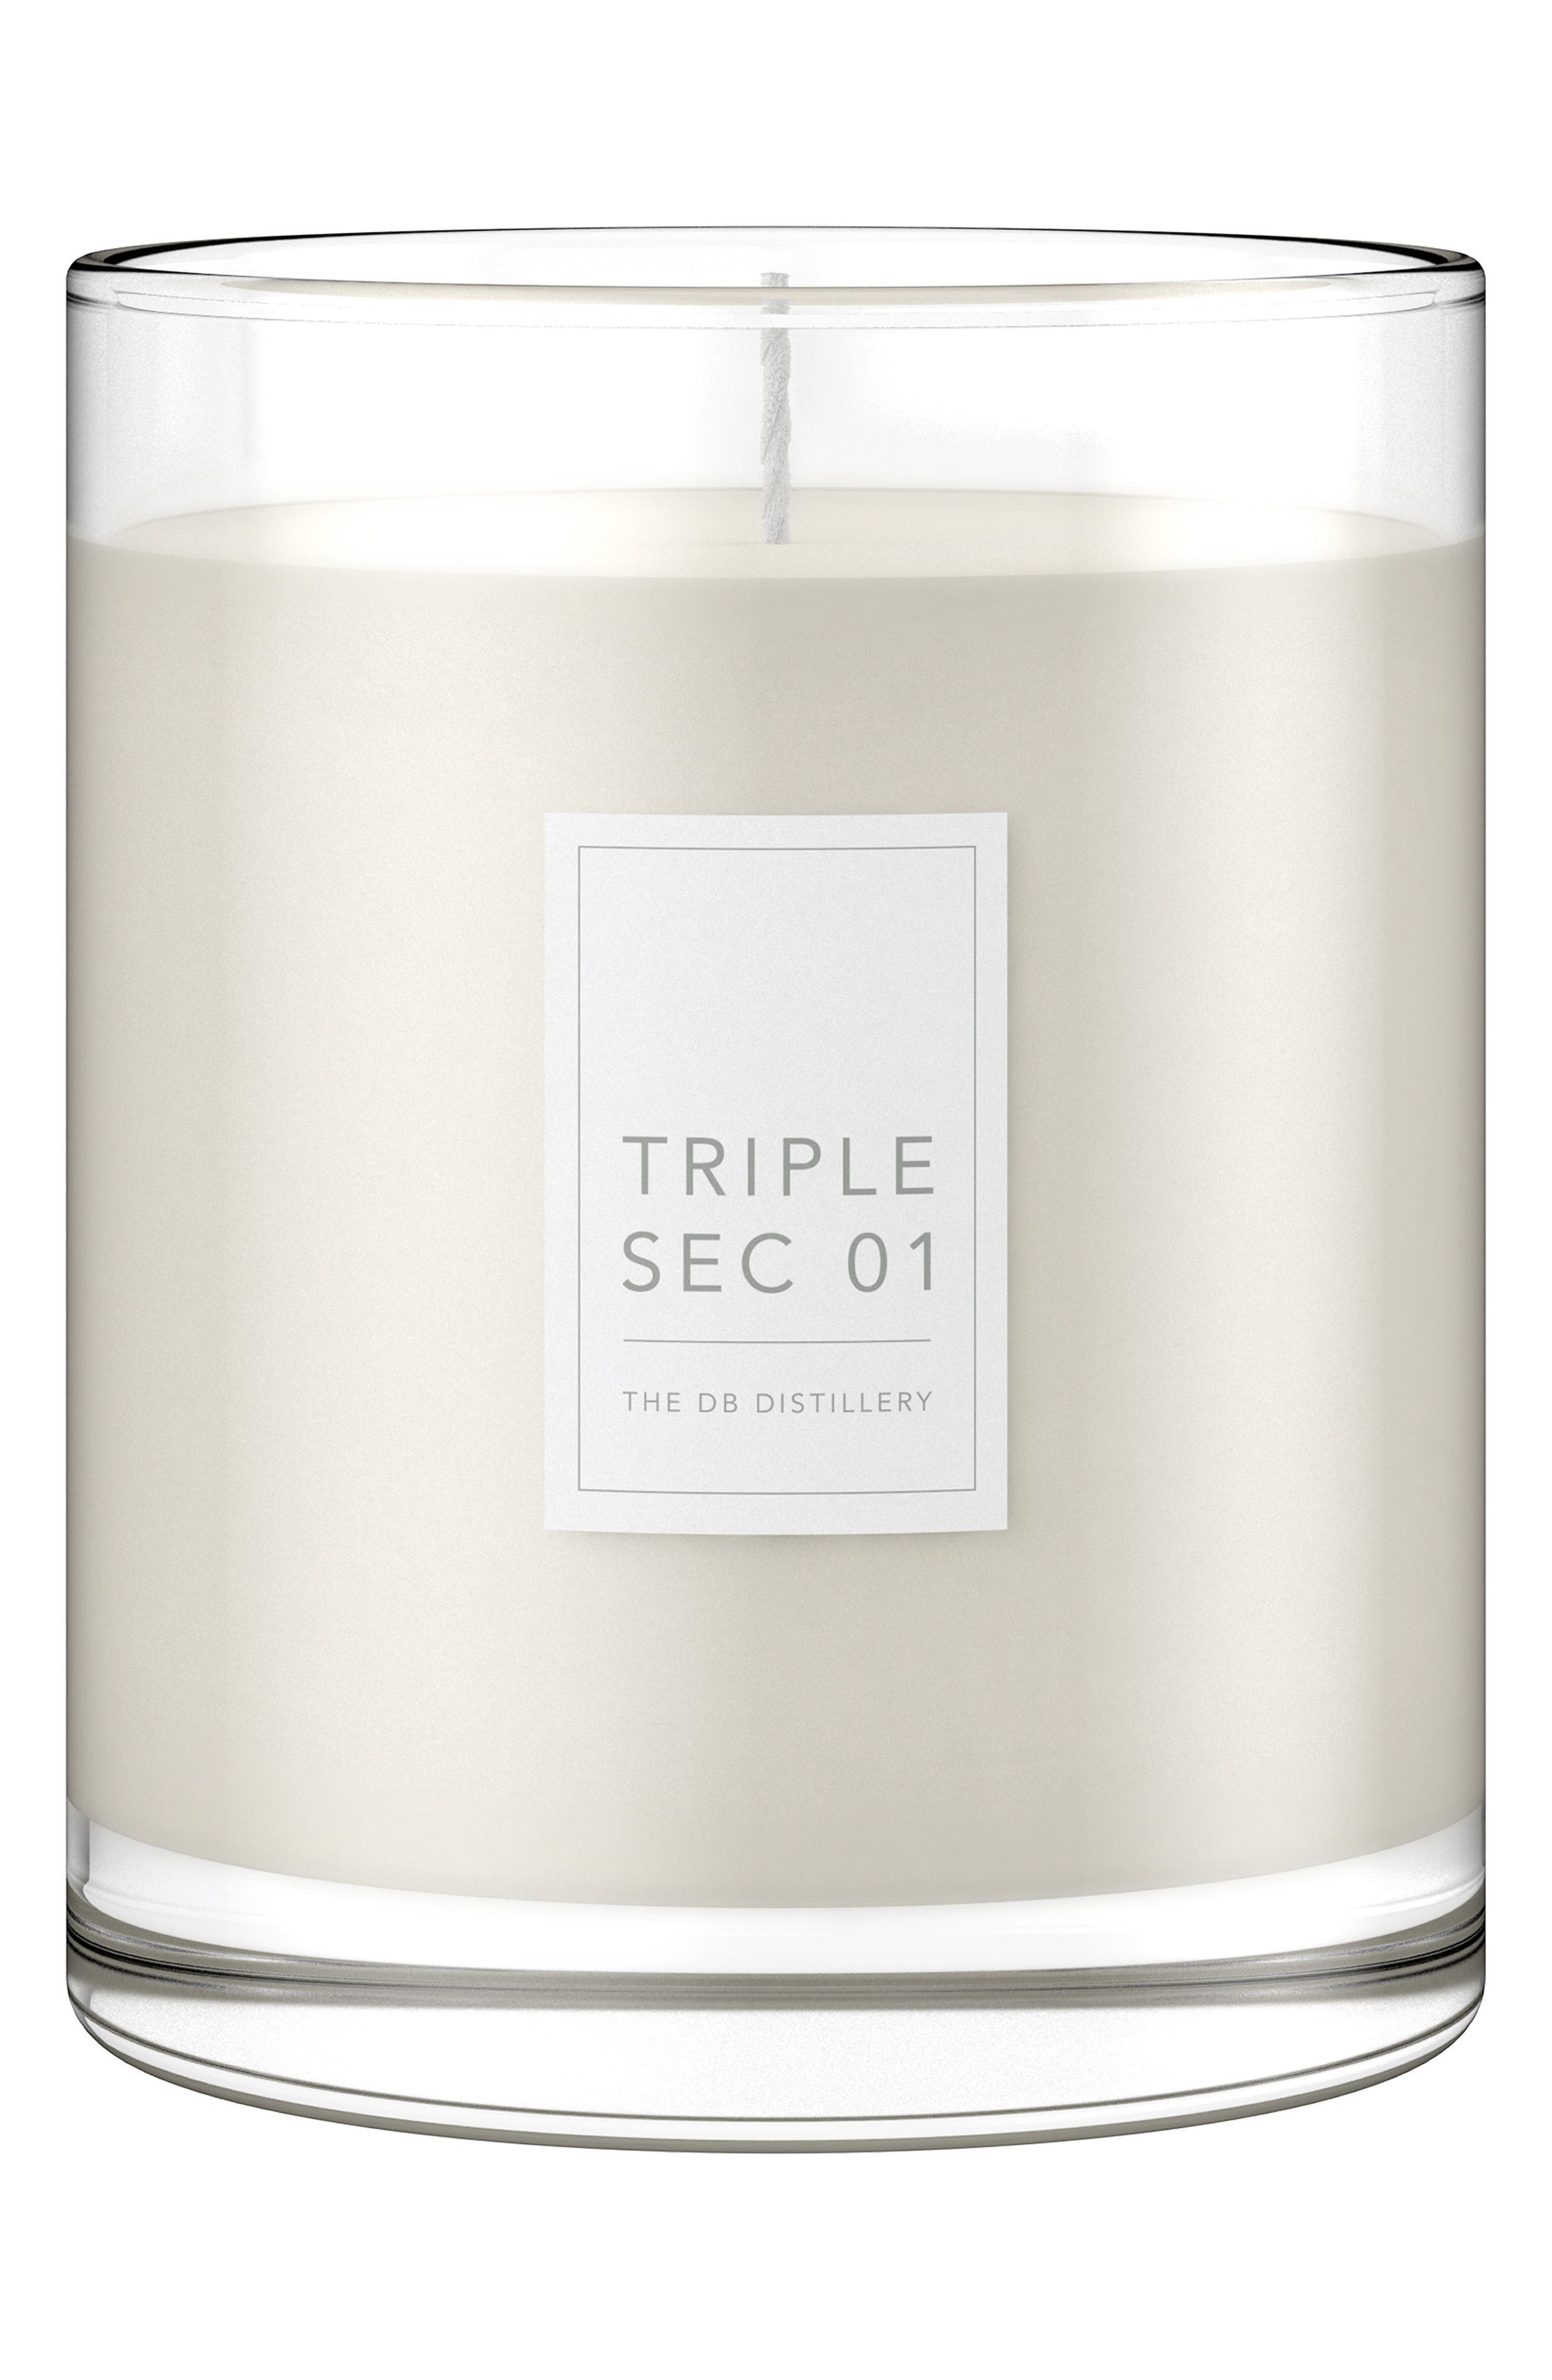 Drybar The Scent of Drybar Triple Sec 01 Candle